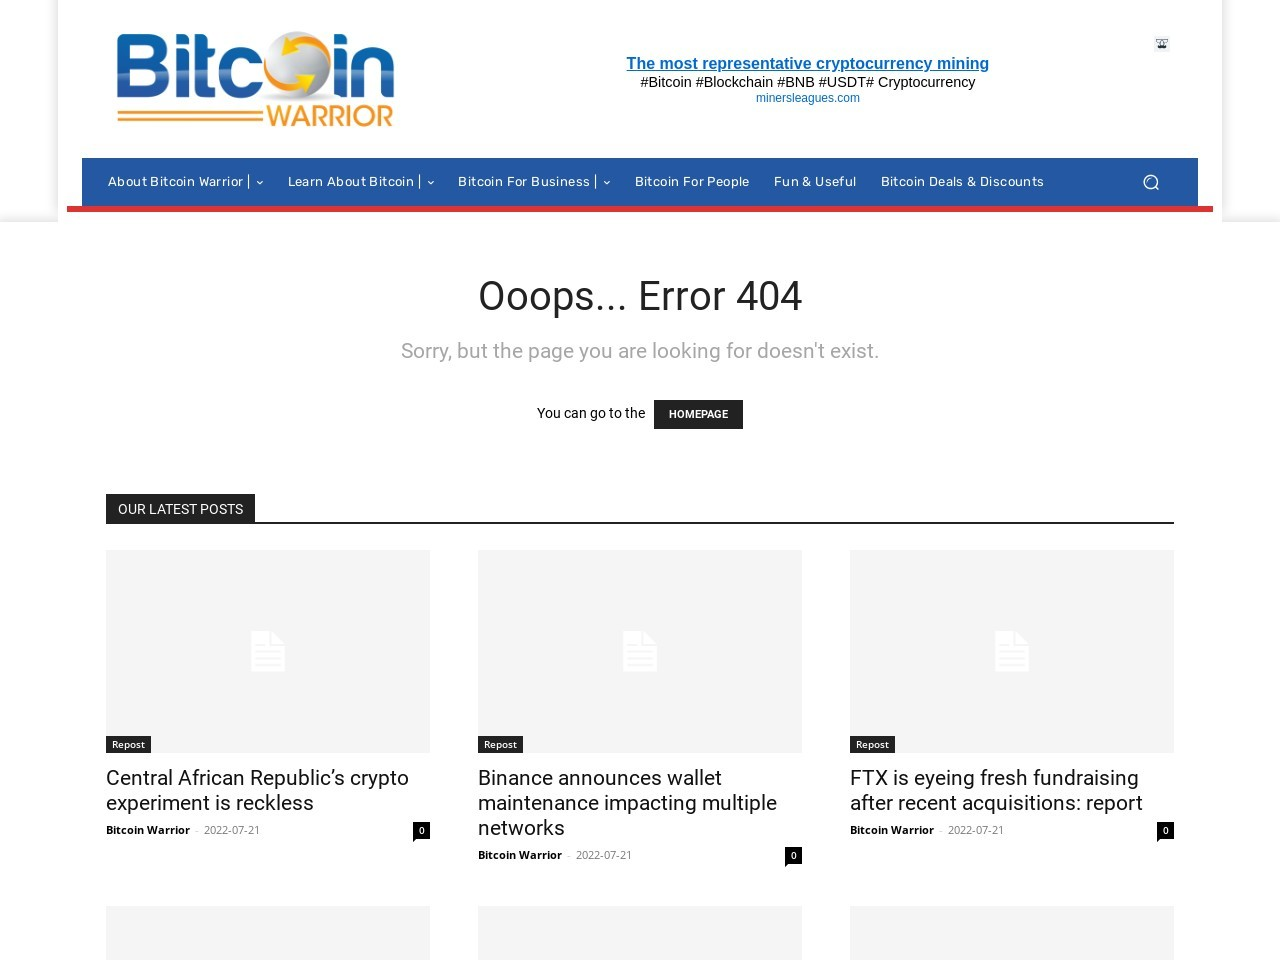 XBT/USD Analysis: Bitcoin Breaks Out Above $7,500 As BitMEX Futures Contract Picks The Pace